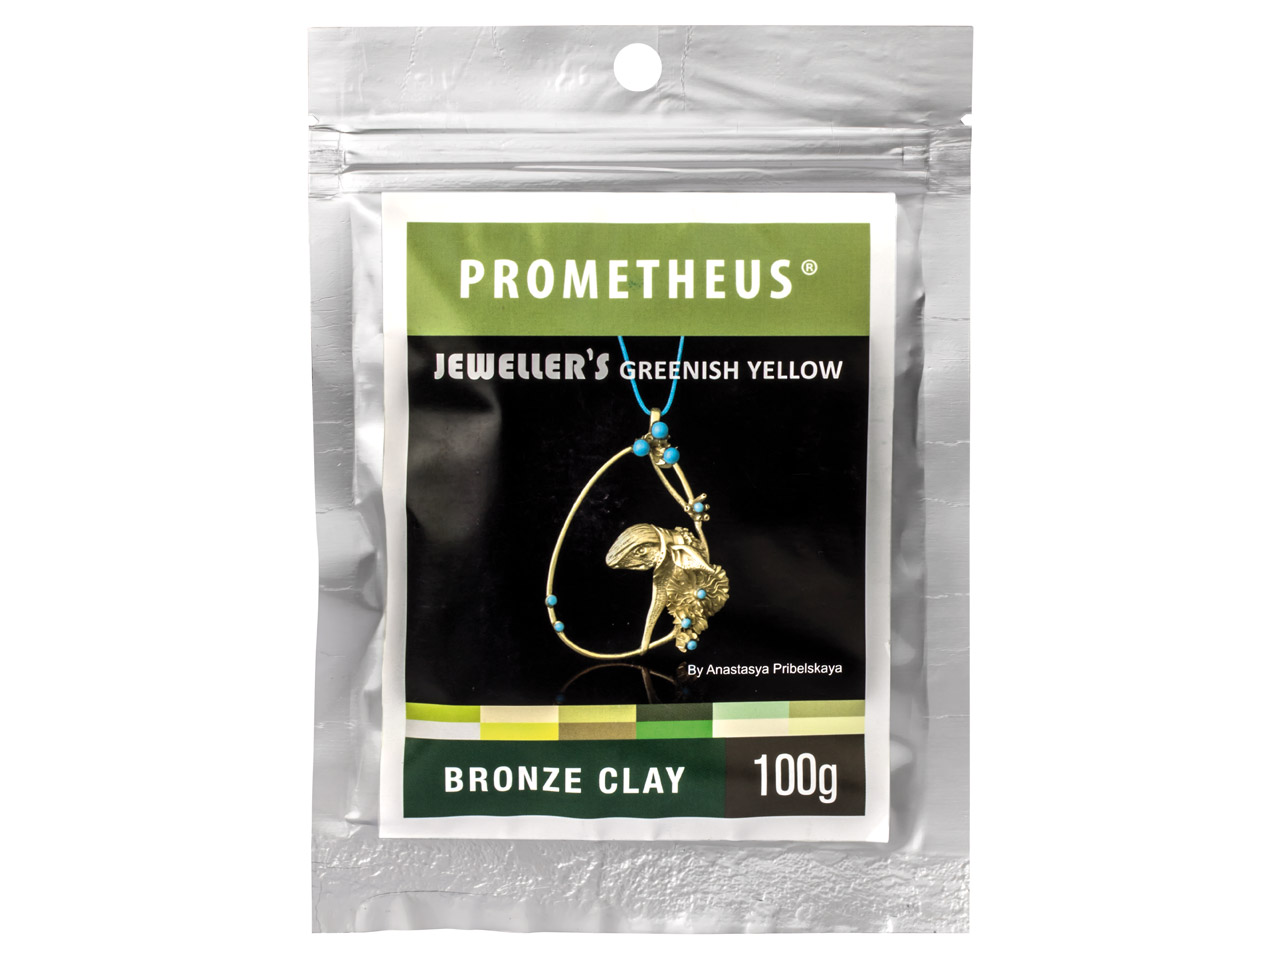 Prometheus Jewellers Greenish      Yellow Bronze Clay 100g